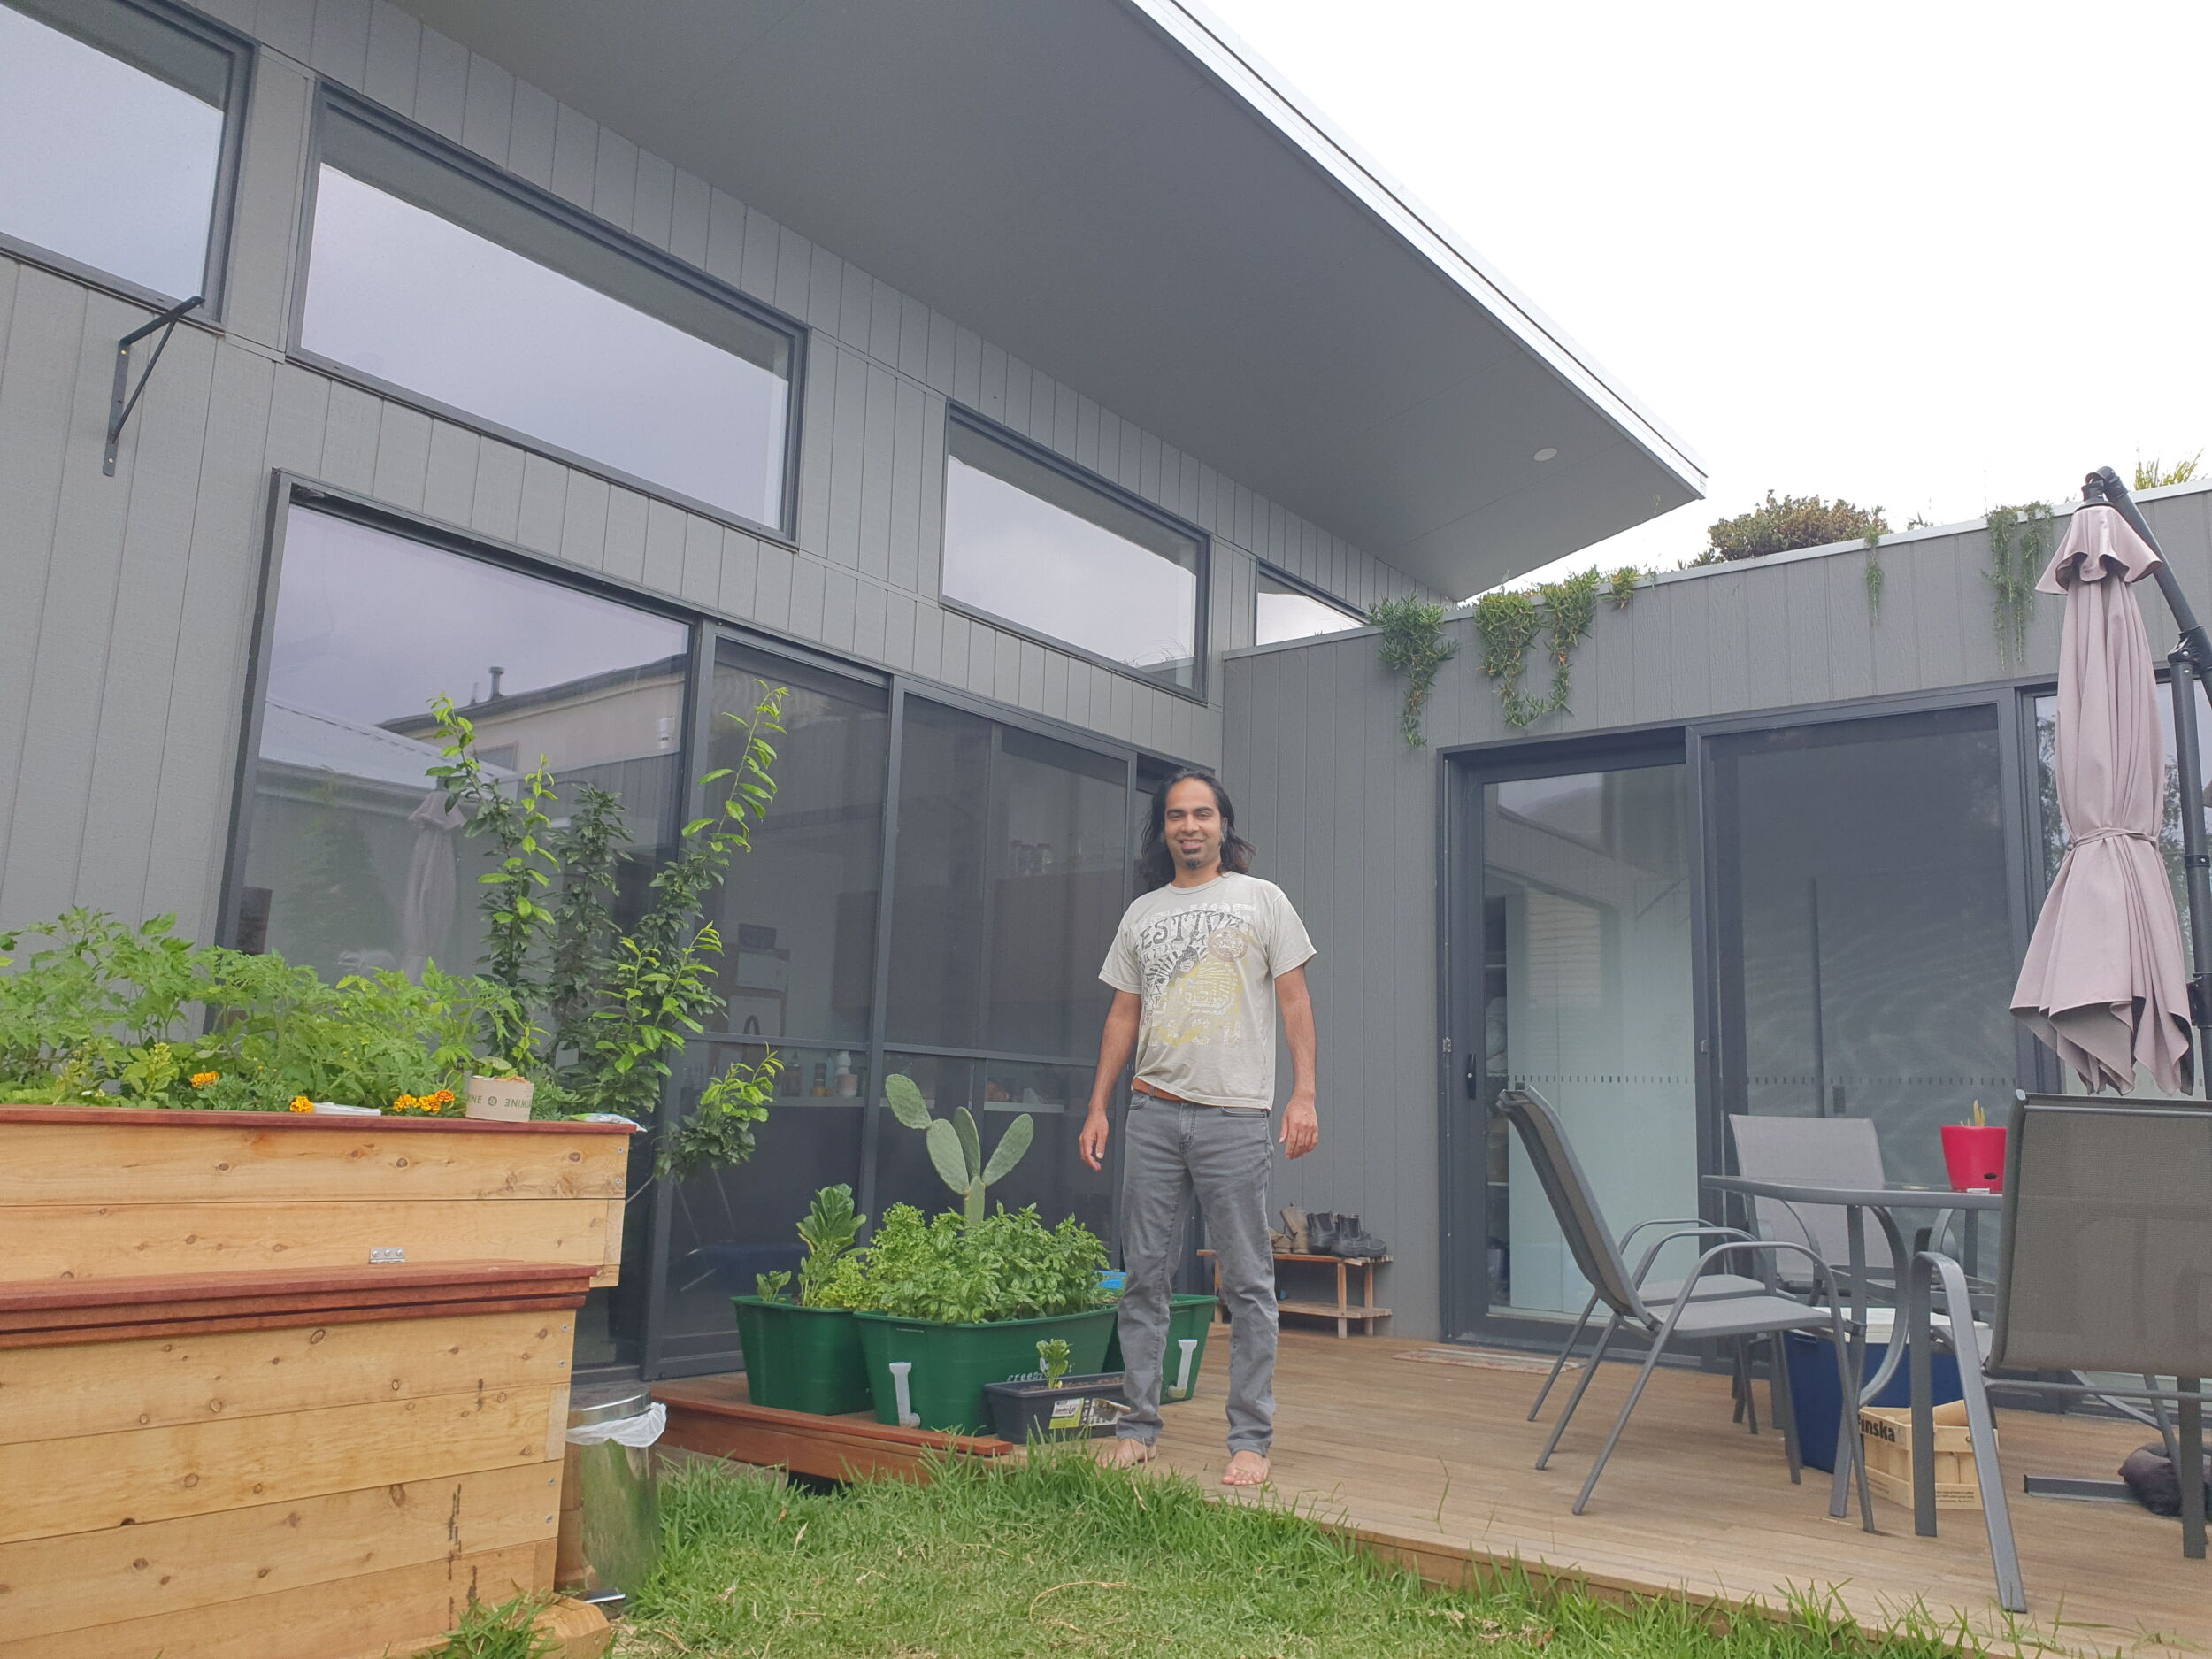 Photo of a man on a back deck of a sustainable house with raised vegetable boxes